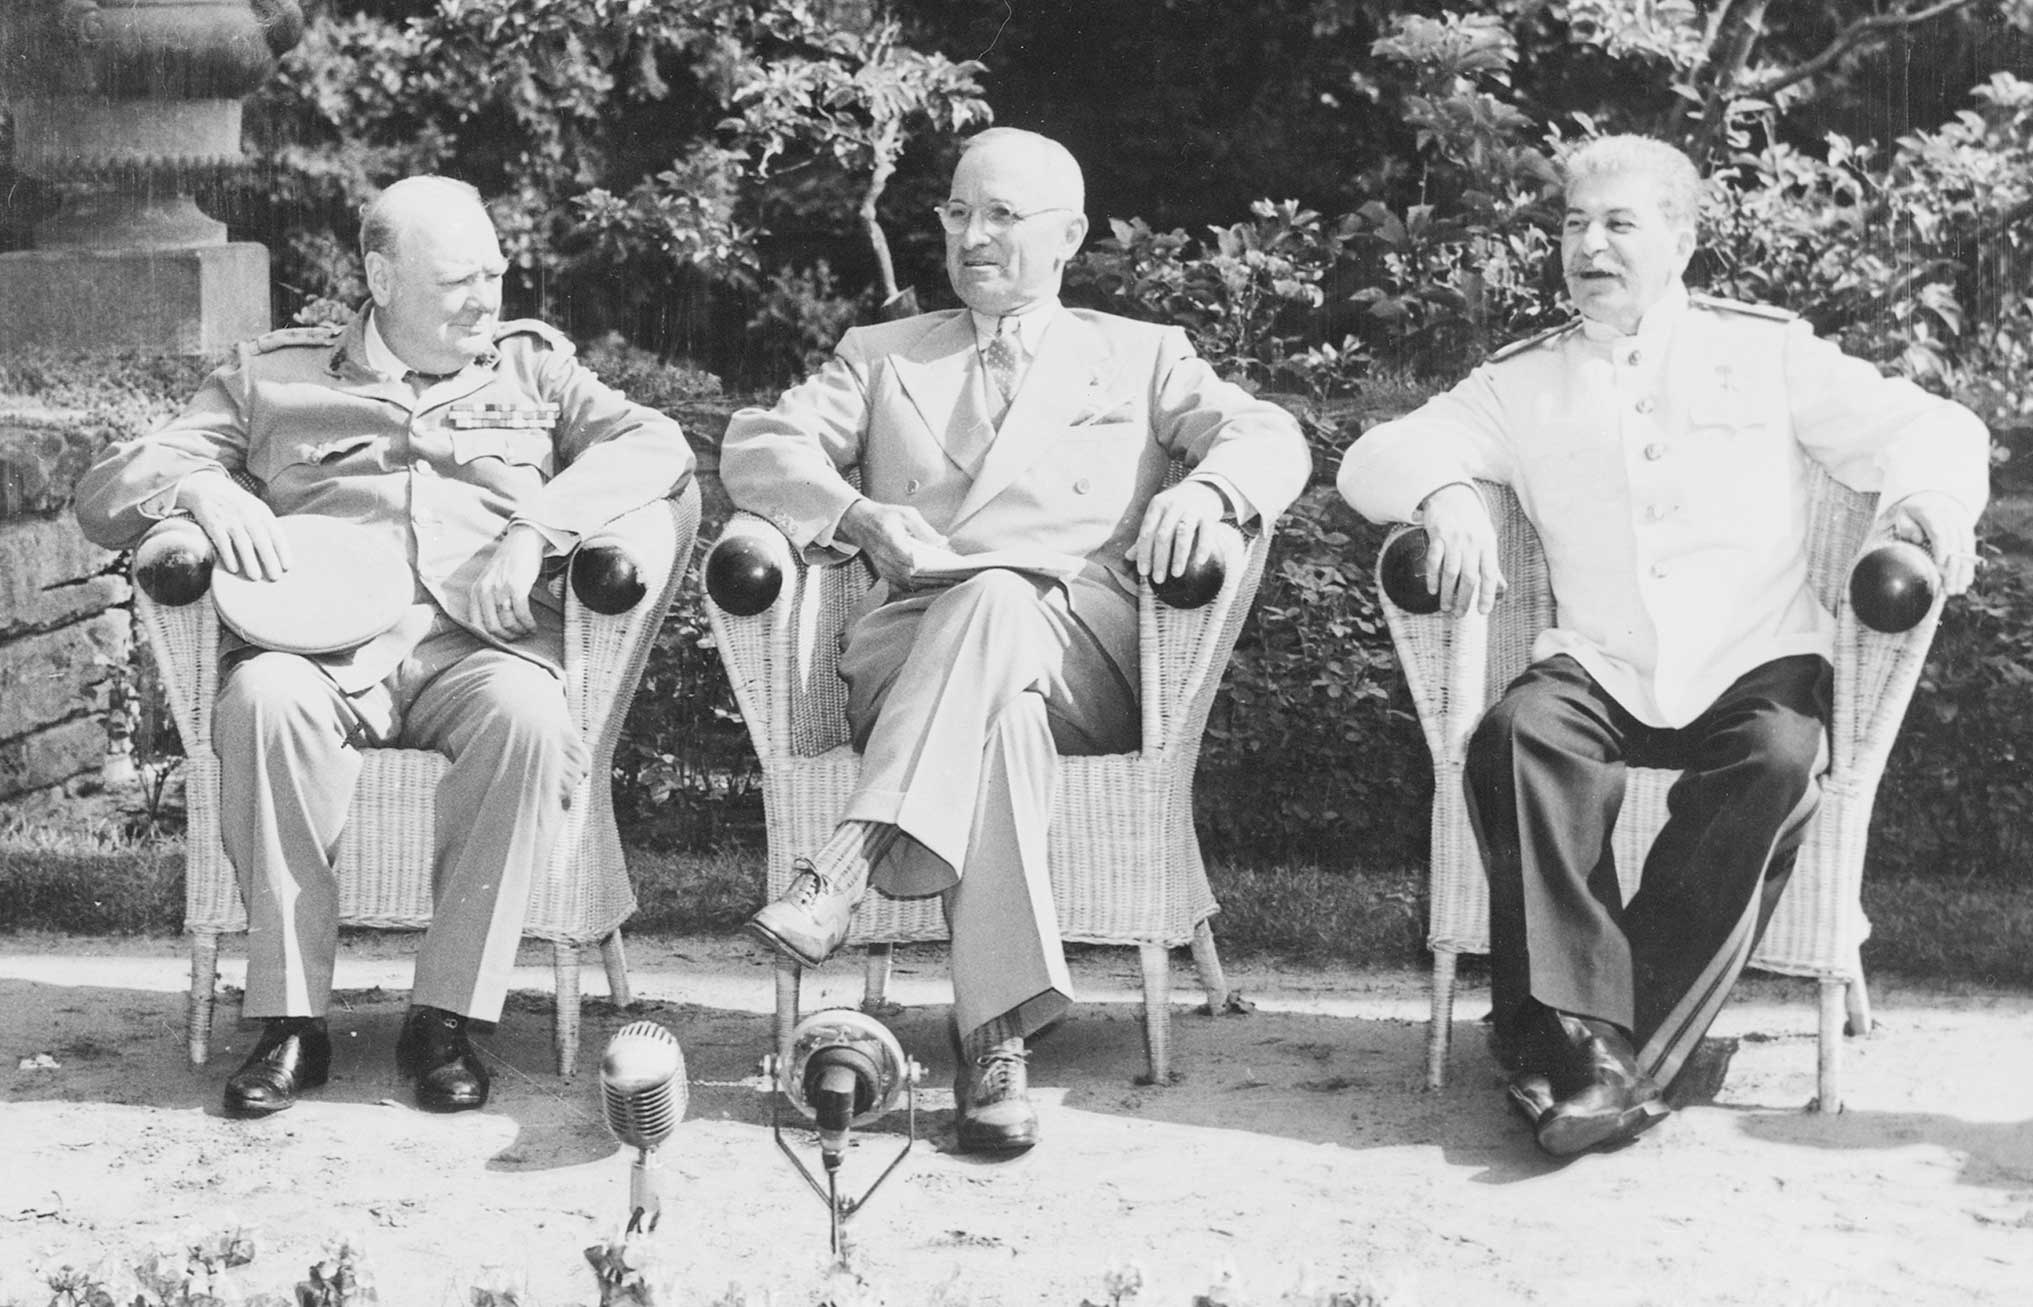 «The Big Three» de la Conferència de Potsdam